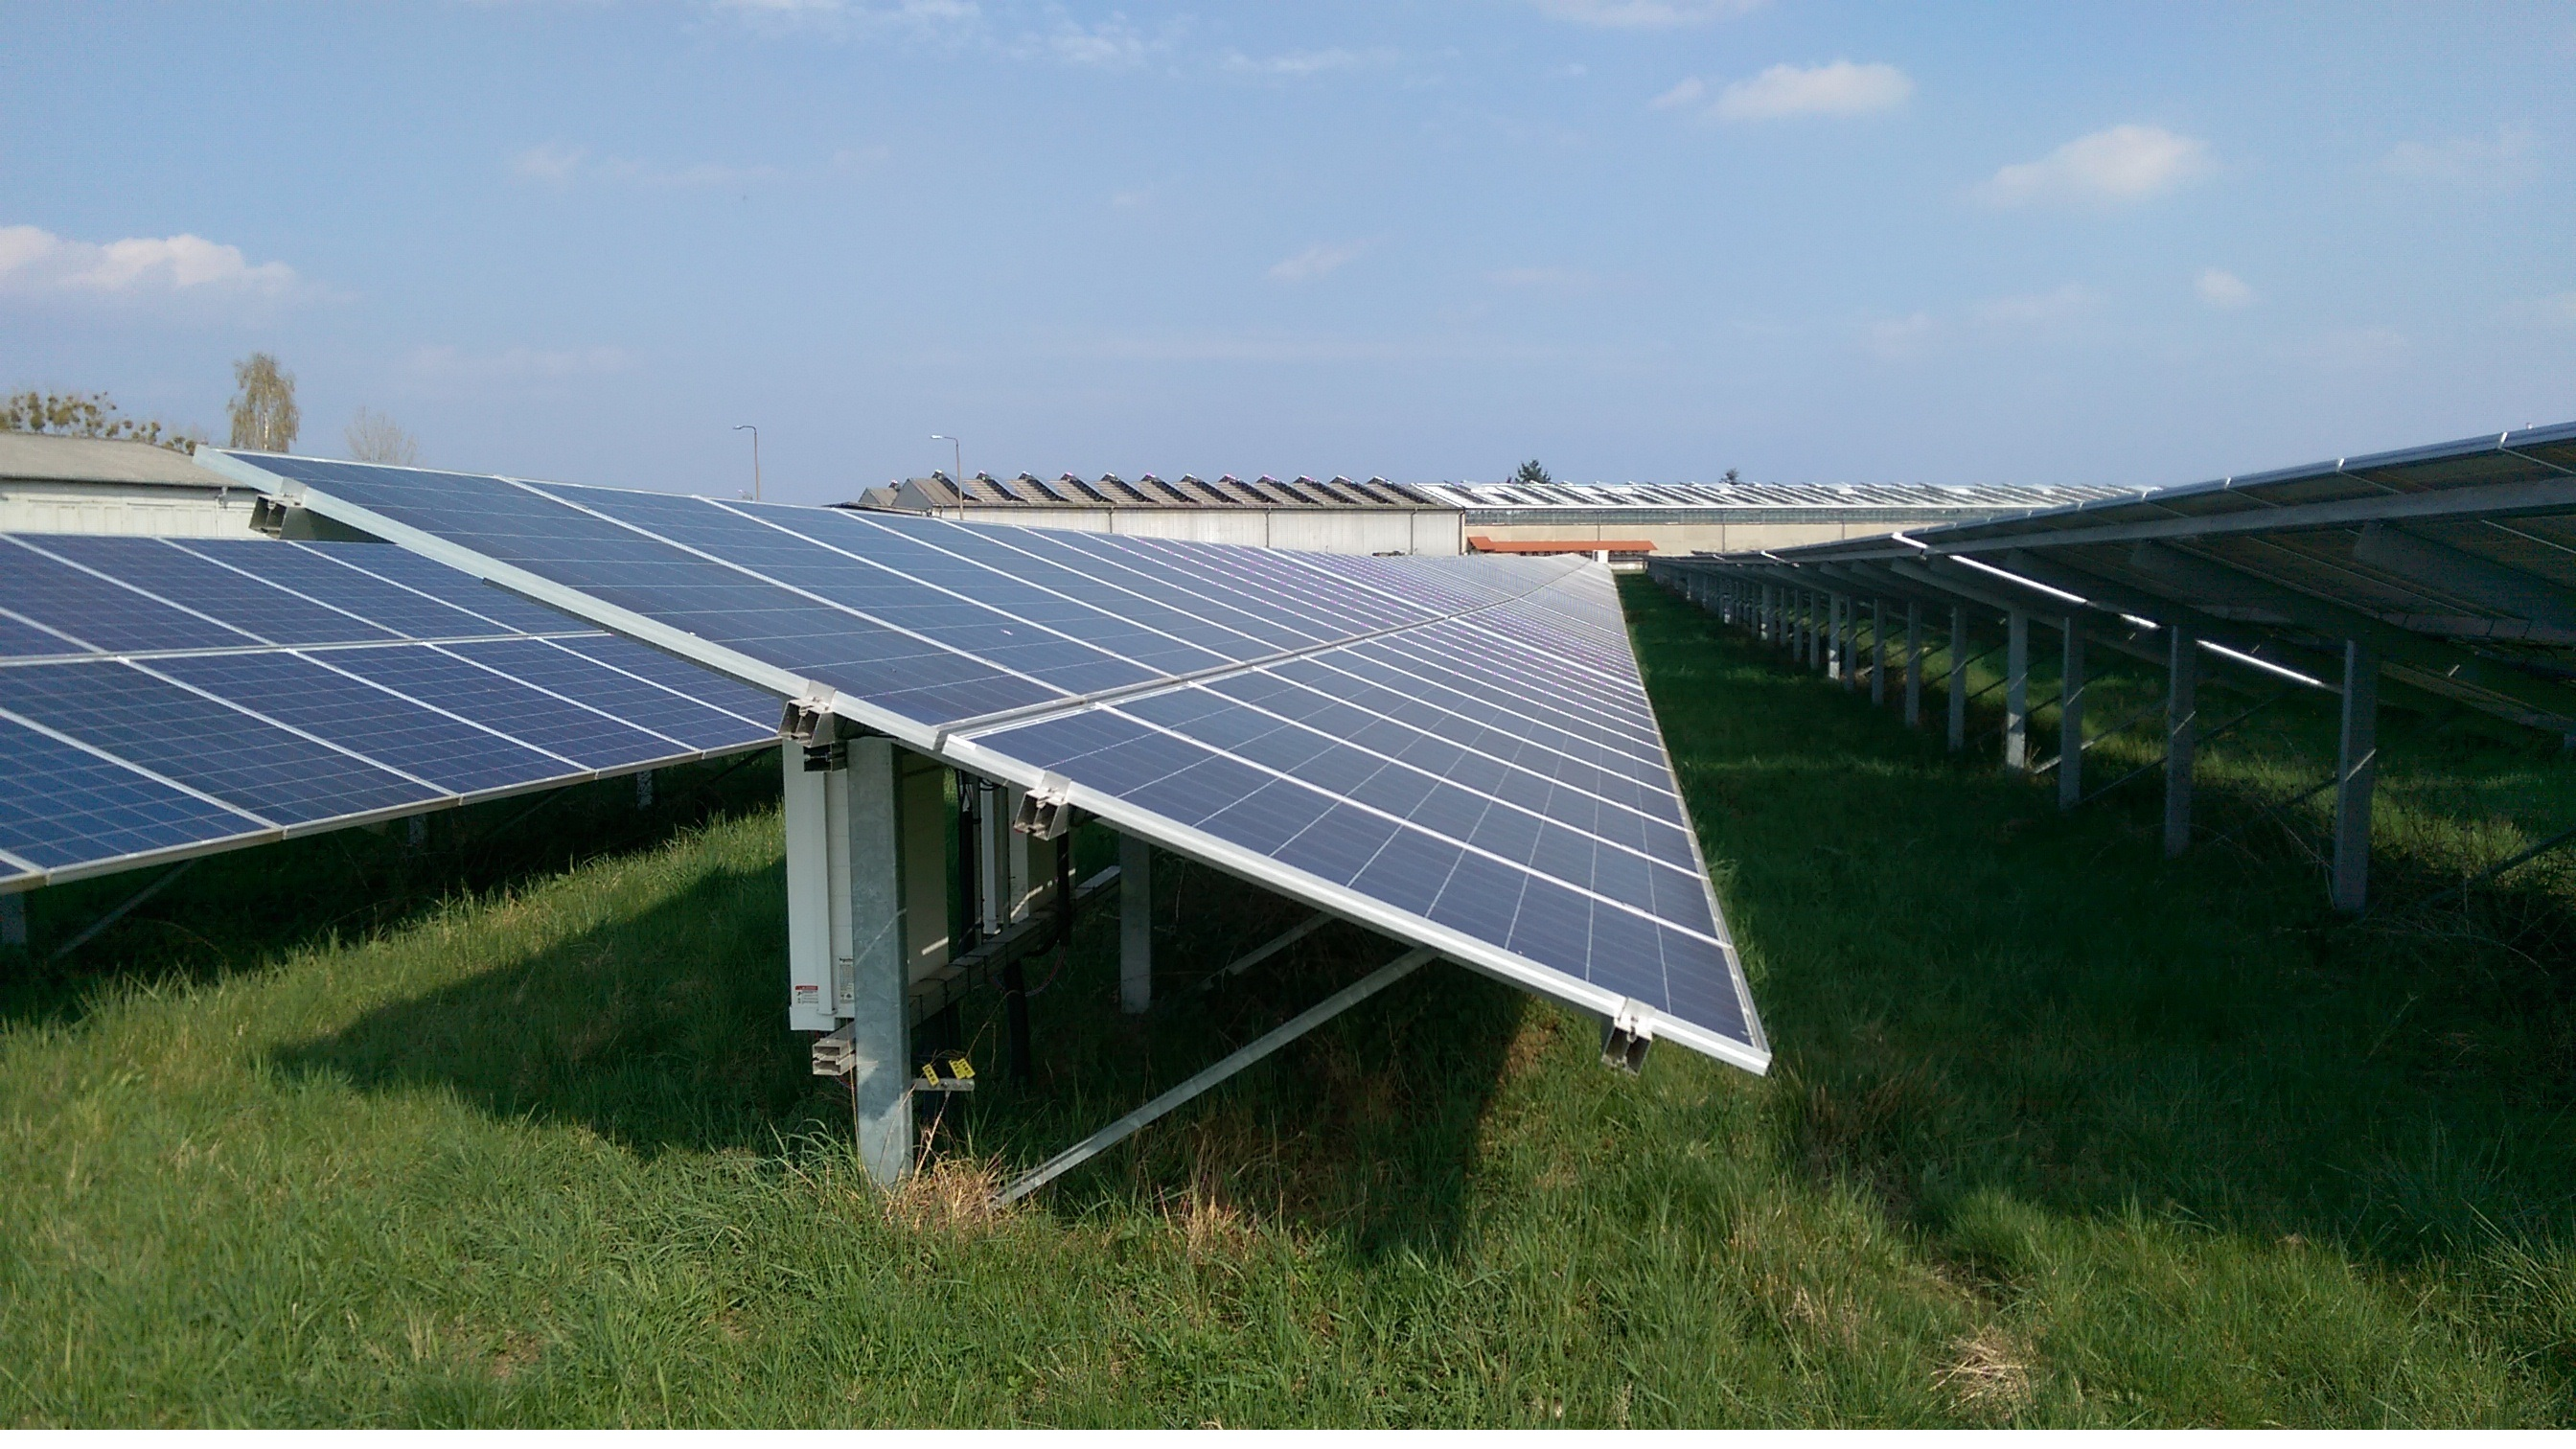 13.09.2016 - Next acquisition of pv park (1.6 MWp) completed